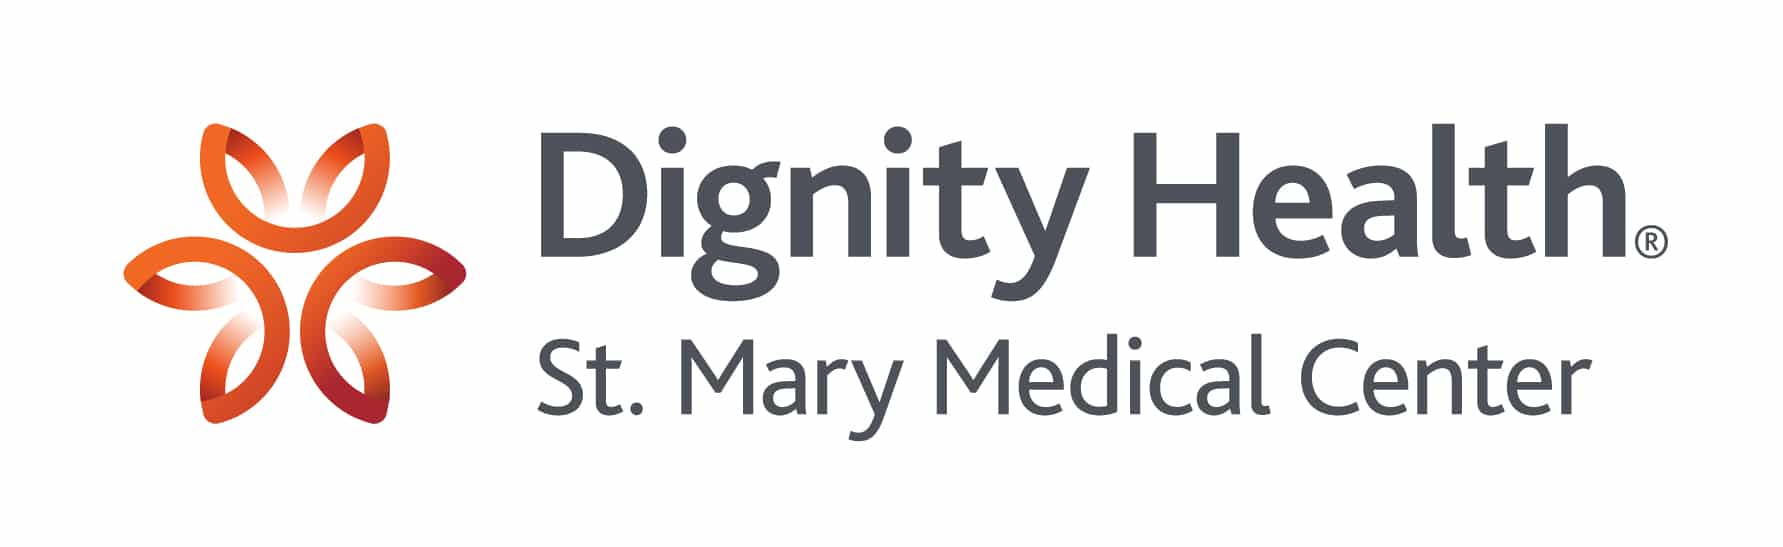 Dignity Health – St. Mary Medical Center logo